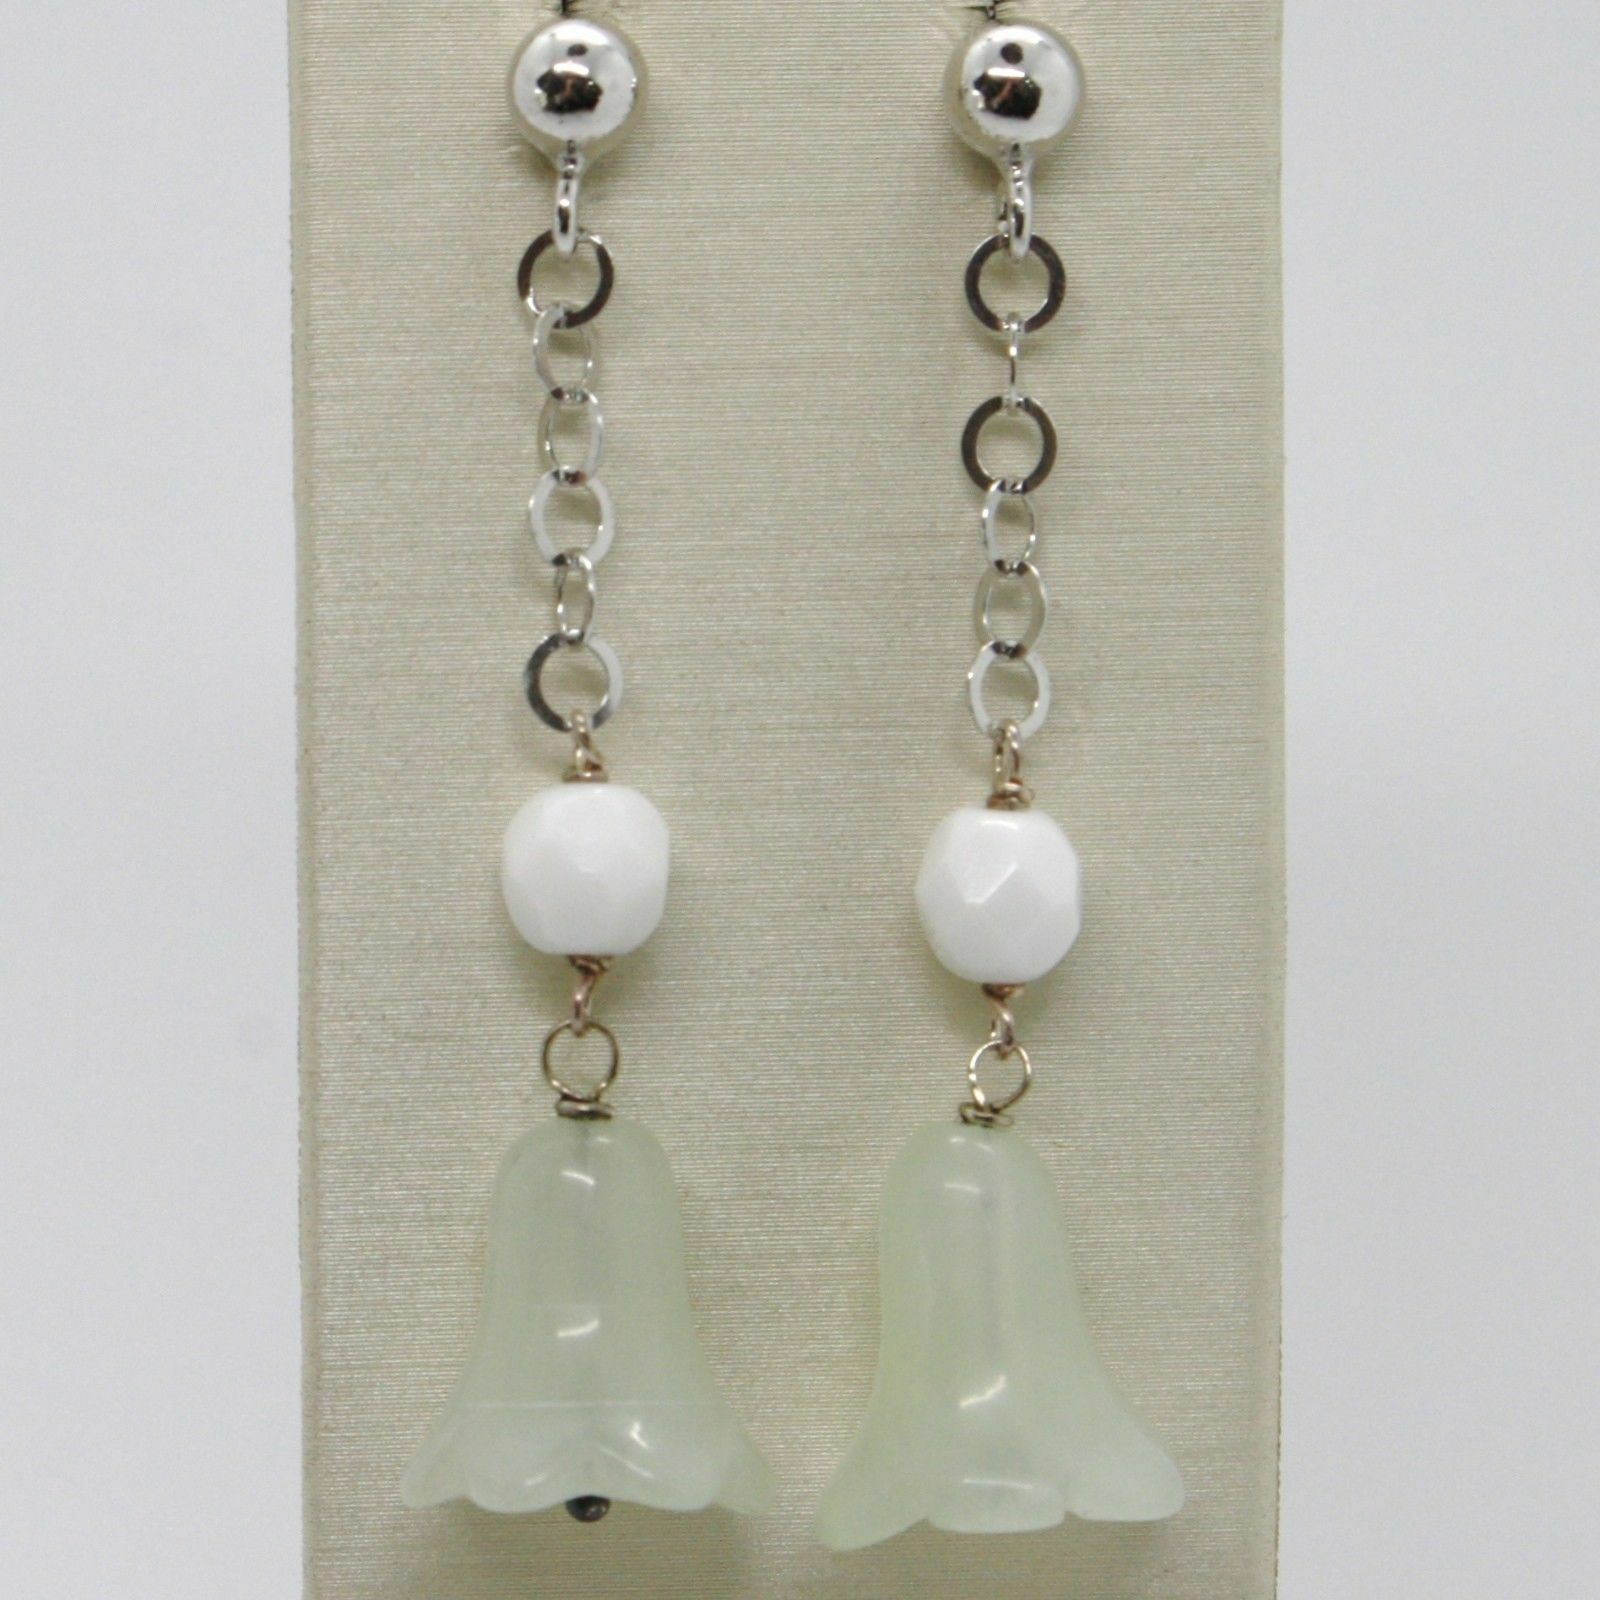 Silver Earrings 925 Tried and Tested Hanging with Jade Green to Bell Campanula